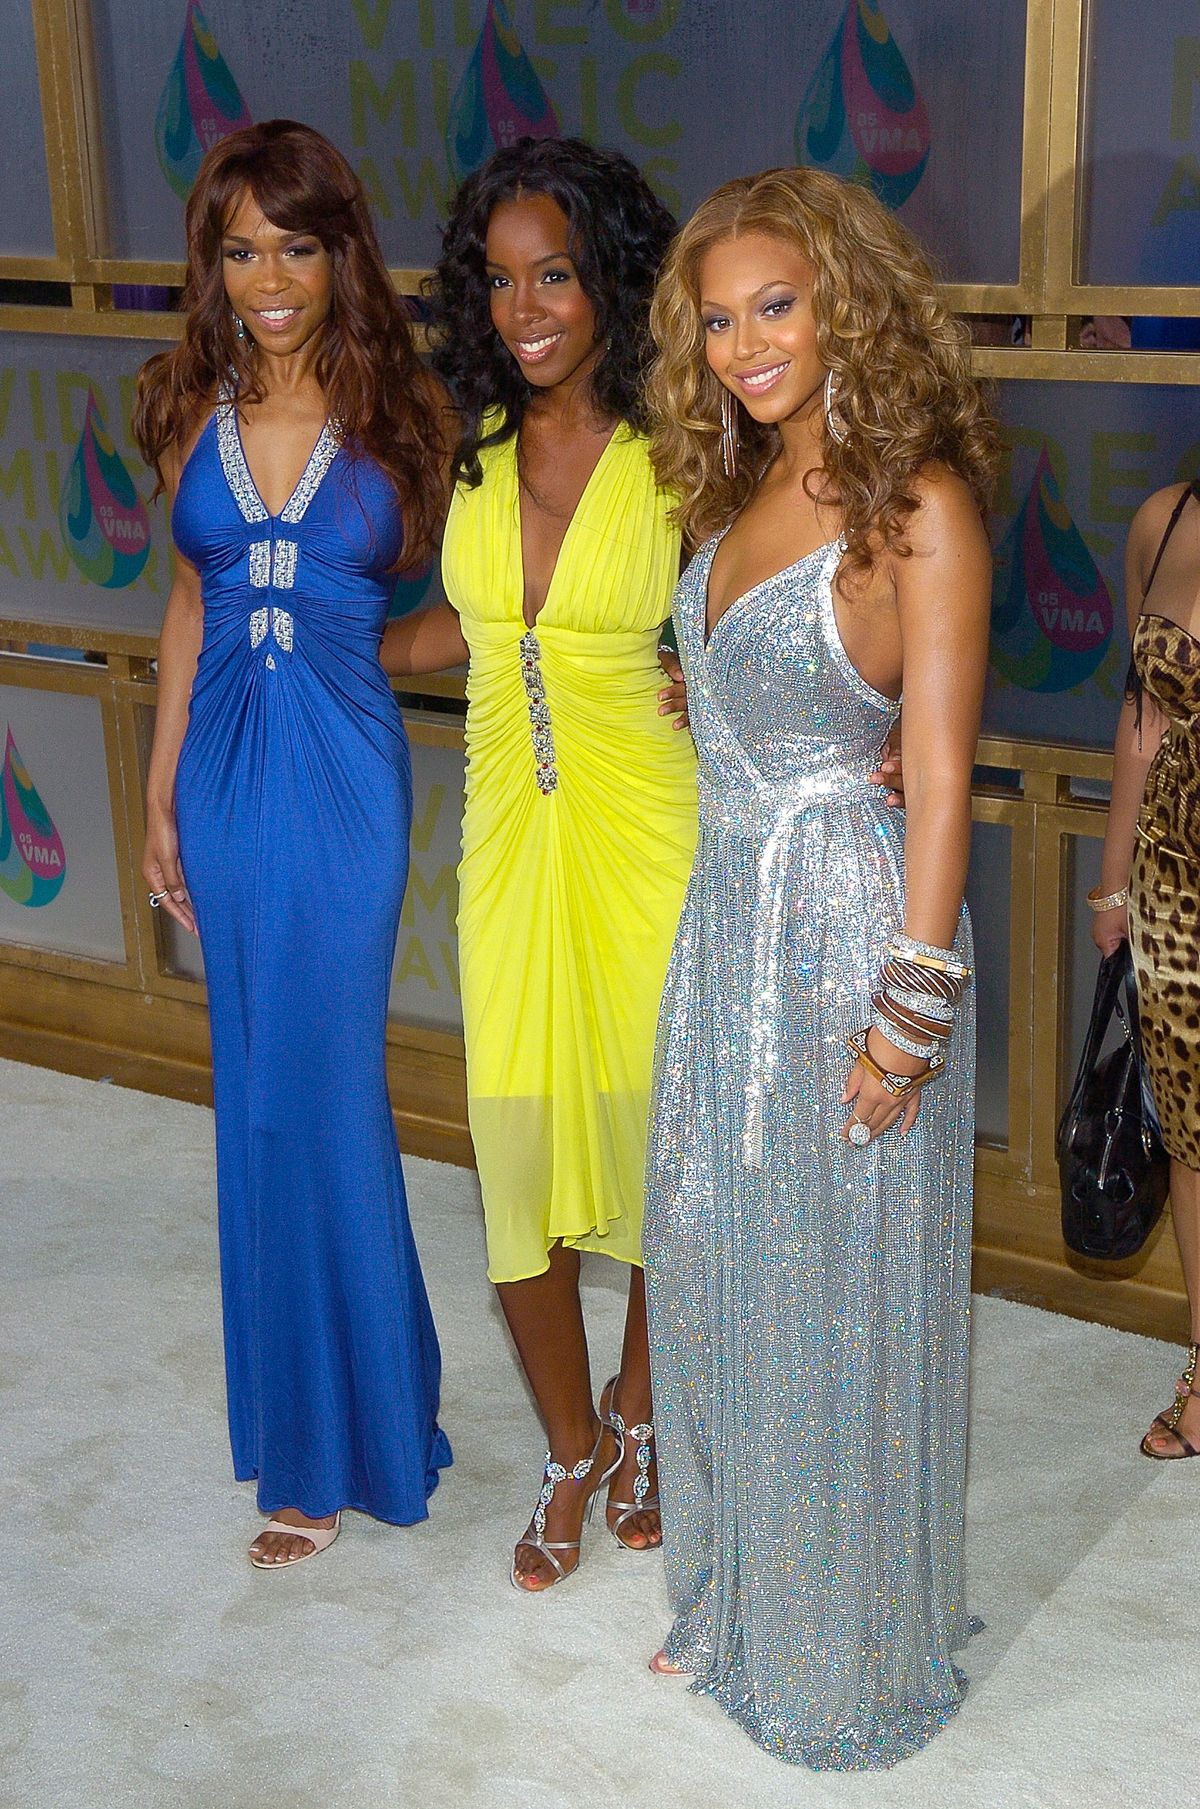 MIAMI - AUGUST 28: (L to R) Michelle Williams, Kelly Rowland and Beyonce Knowles of Destiny's Child arrive at the 2005 MTV Video Music Awards at the American Airlines Arena on August 28, 2005 in Miami, Florida. (Photo by Gustavo Caballero/Getty Images)